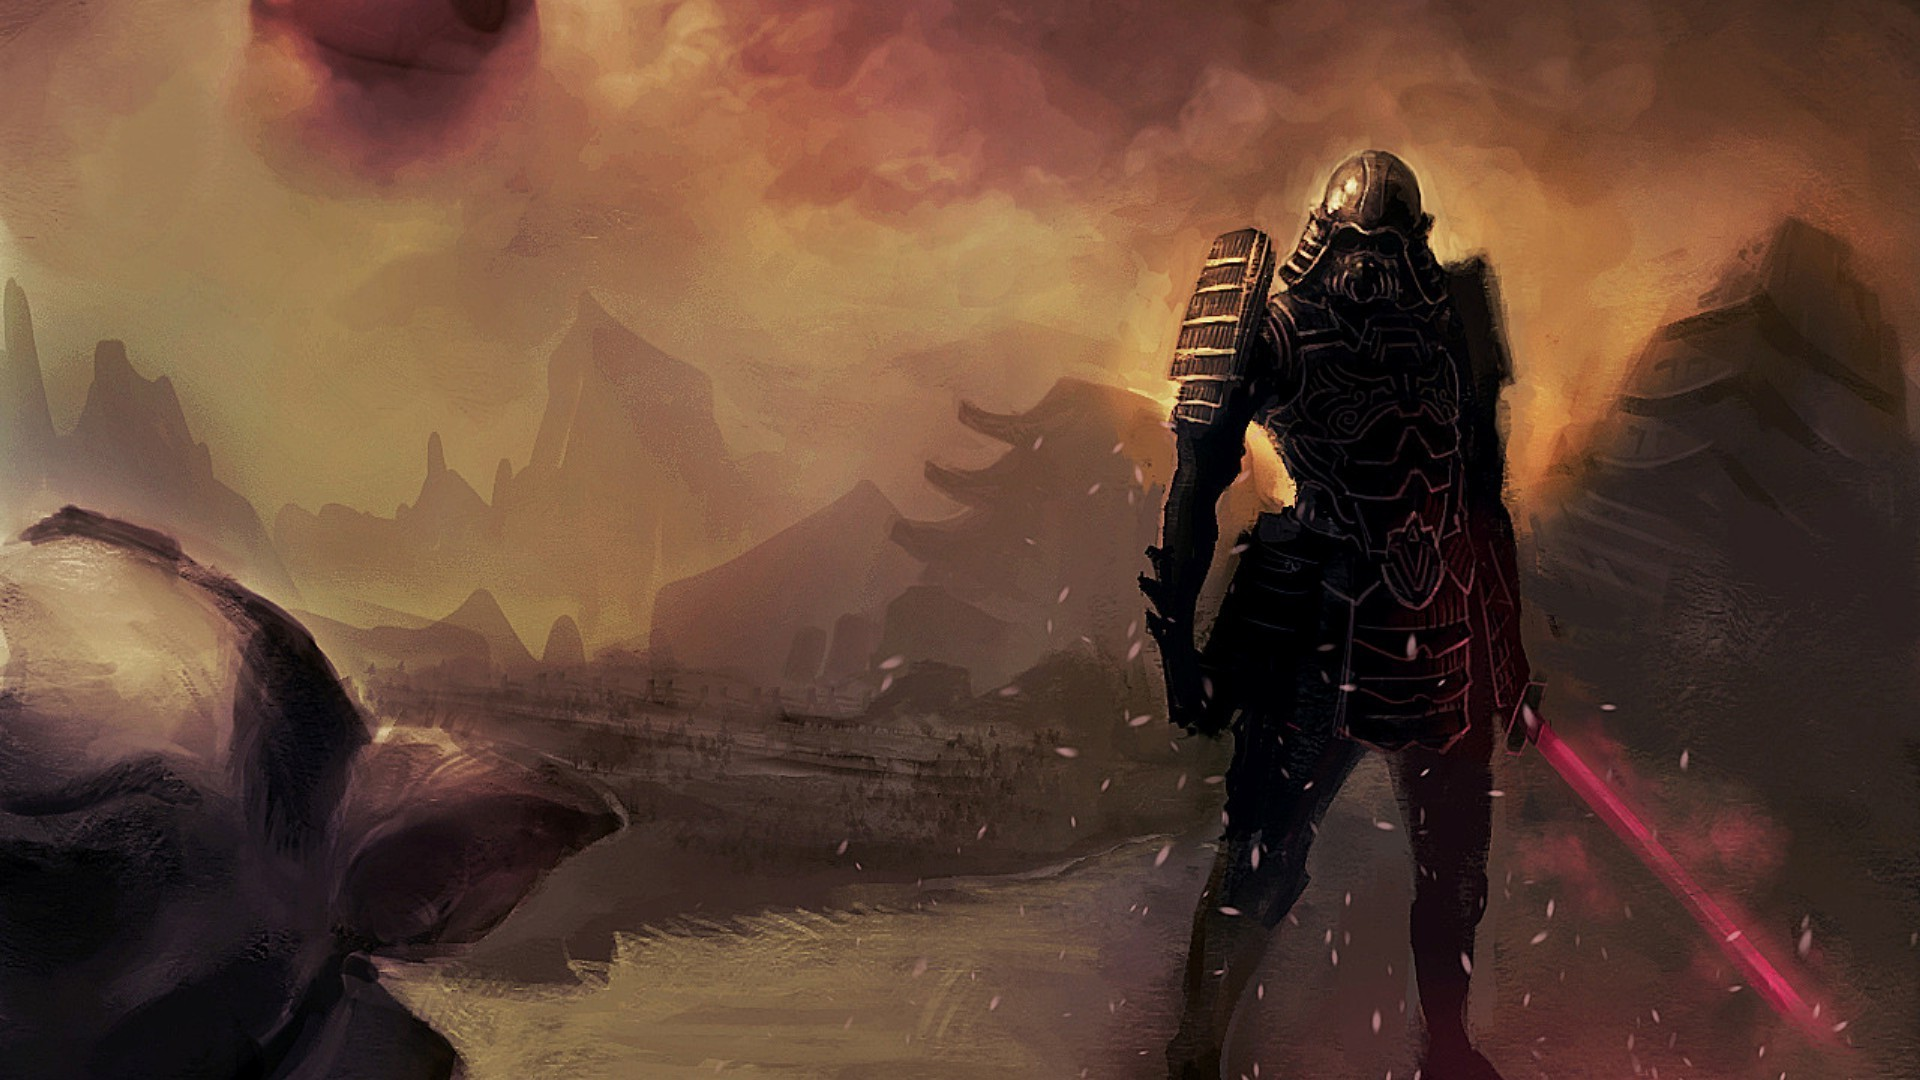 Res: 1920x1080, samurai, Fantasy Art, Star Wars, Crossover, Darso, Dianos Wallpapers HD /  Desktop and Mobile Backgrounds